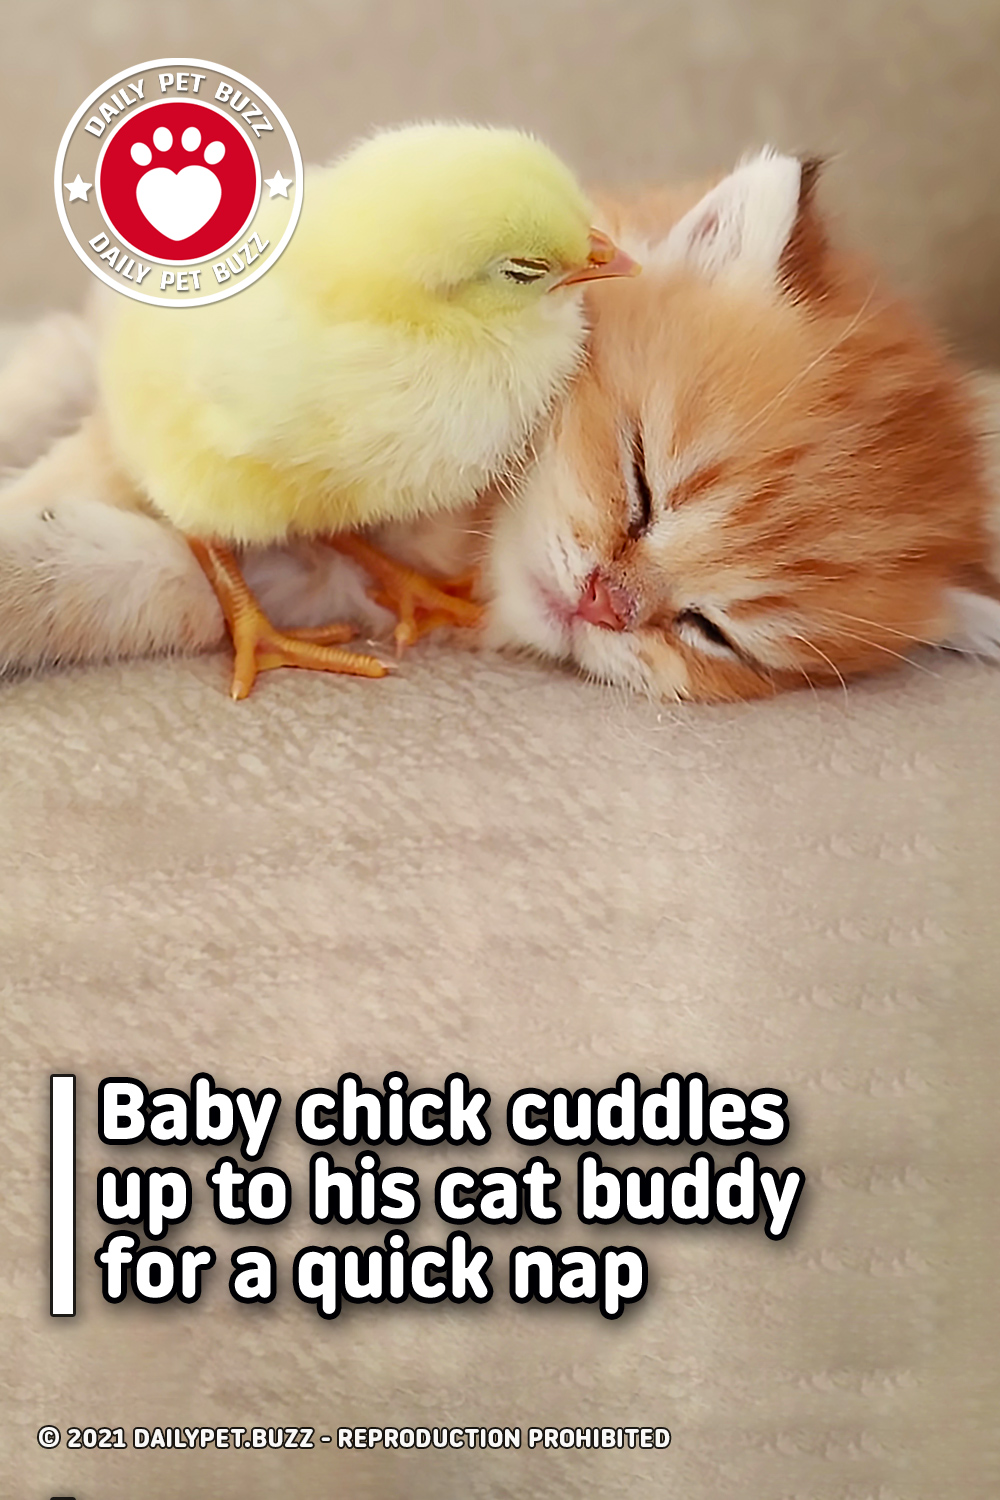 Baby chick cuddles up to his cat buddy for a quick nap